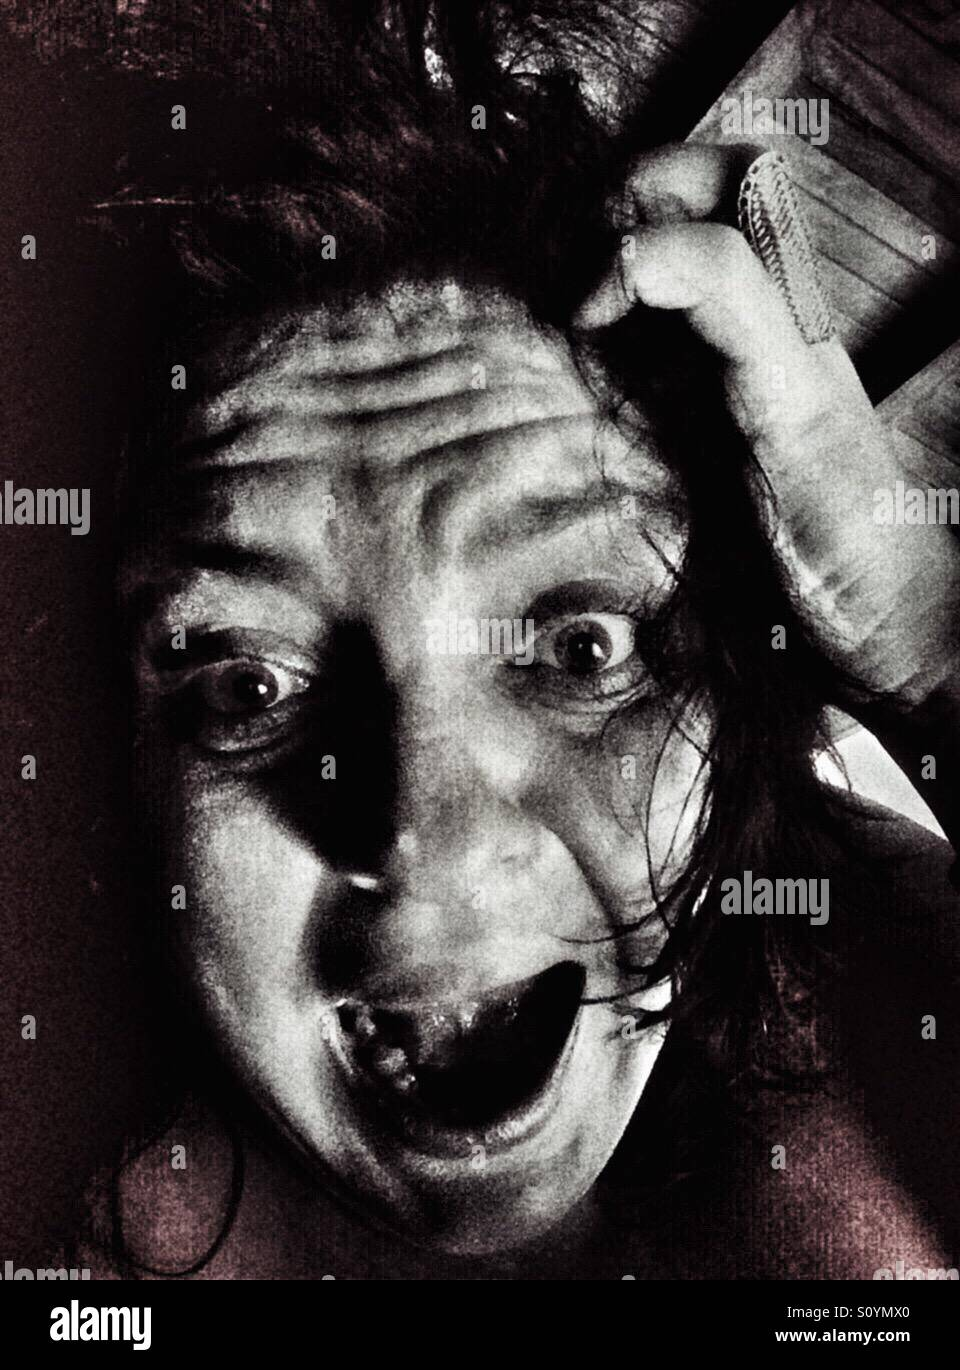 Scared woman - Stock Image